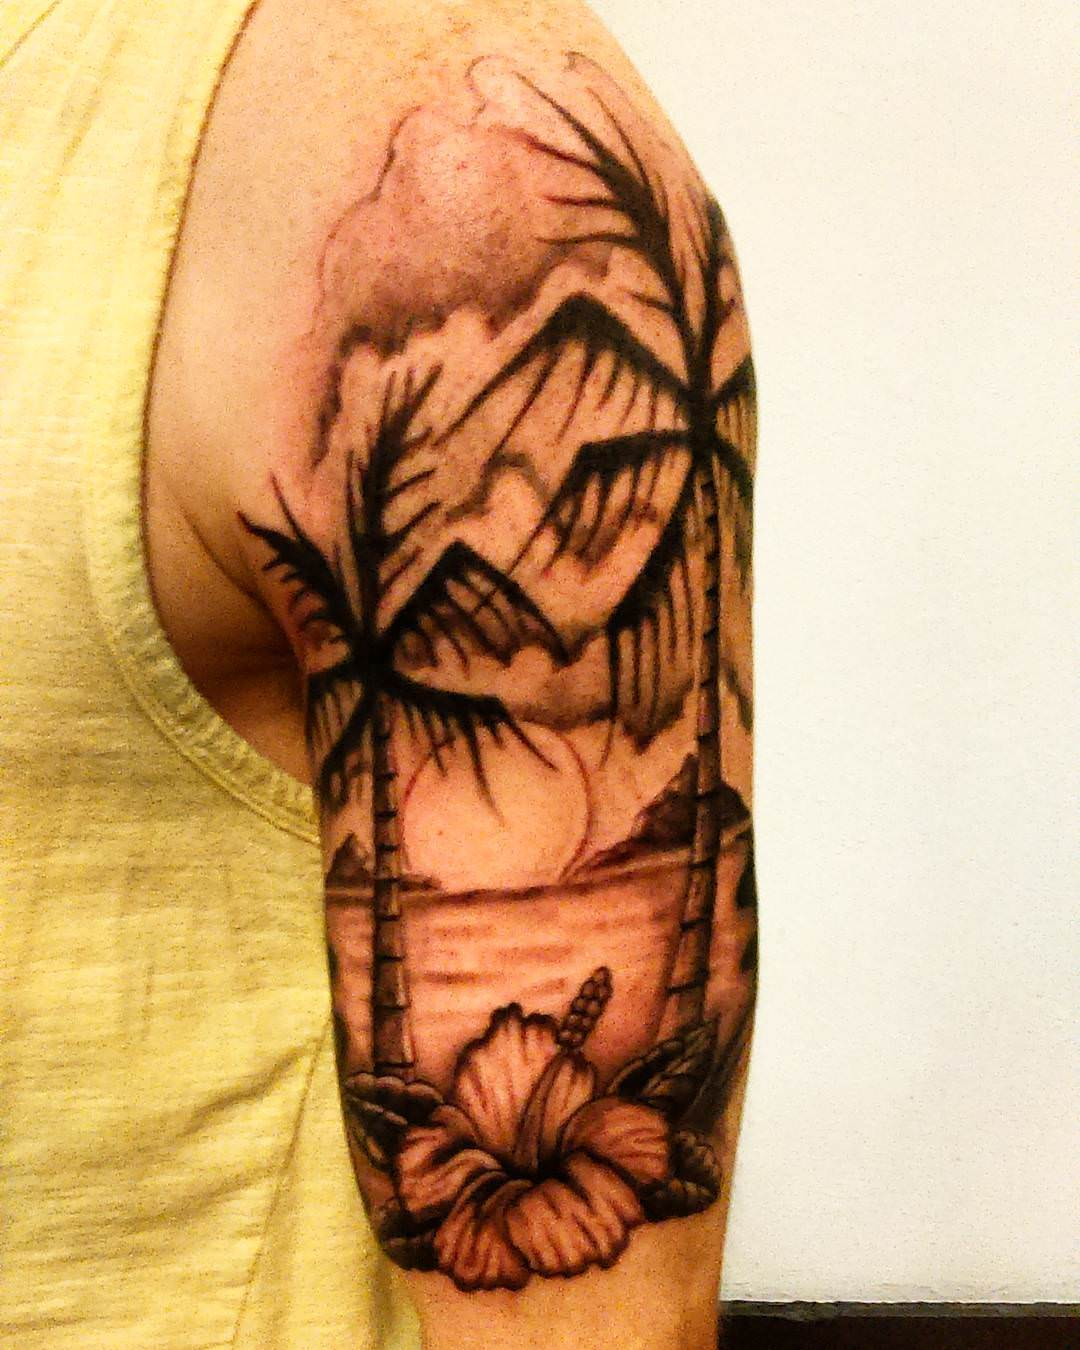 Underarm Tattoos Designs Ideas And Meaning: Nature Tattoos For Men Designs, Ideas And Meaning